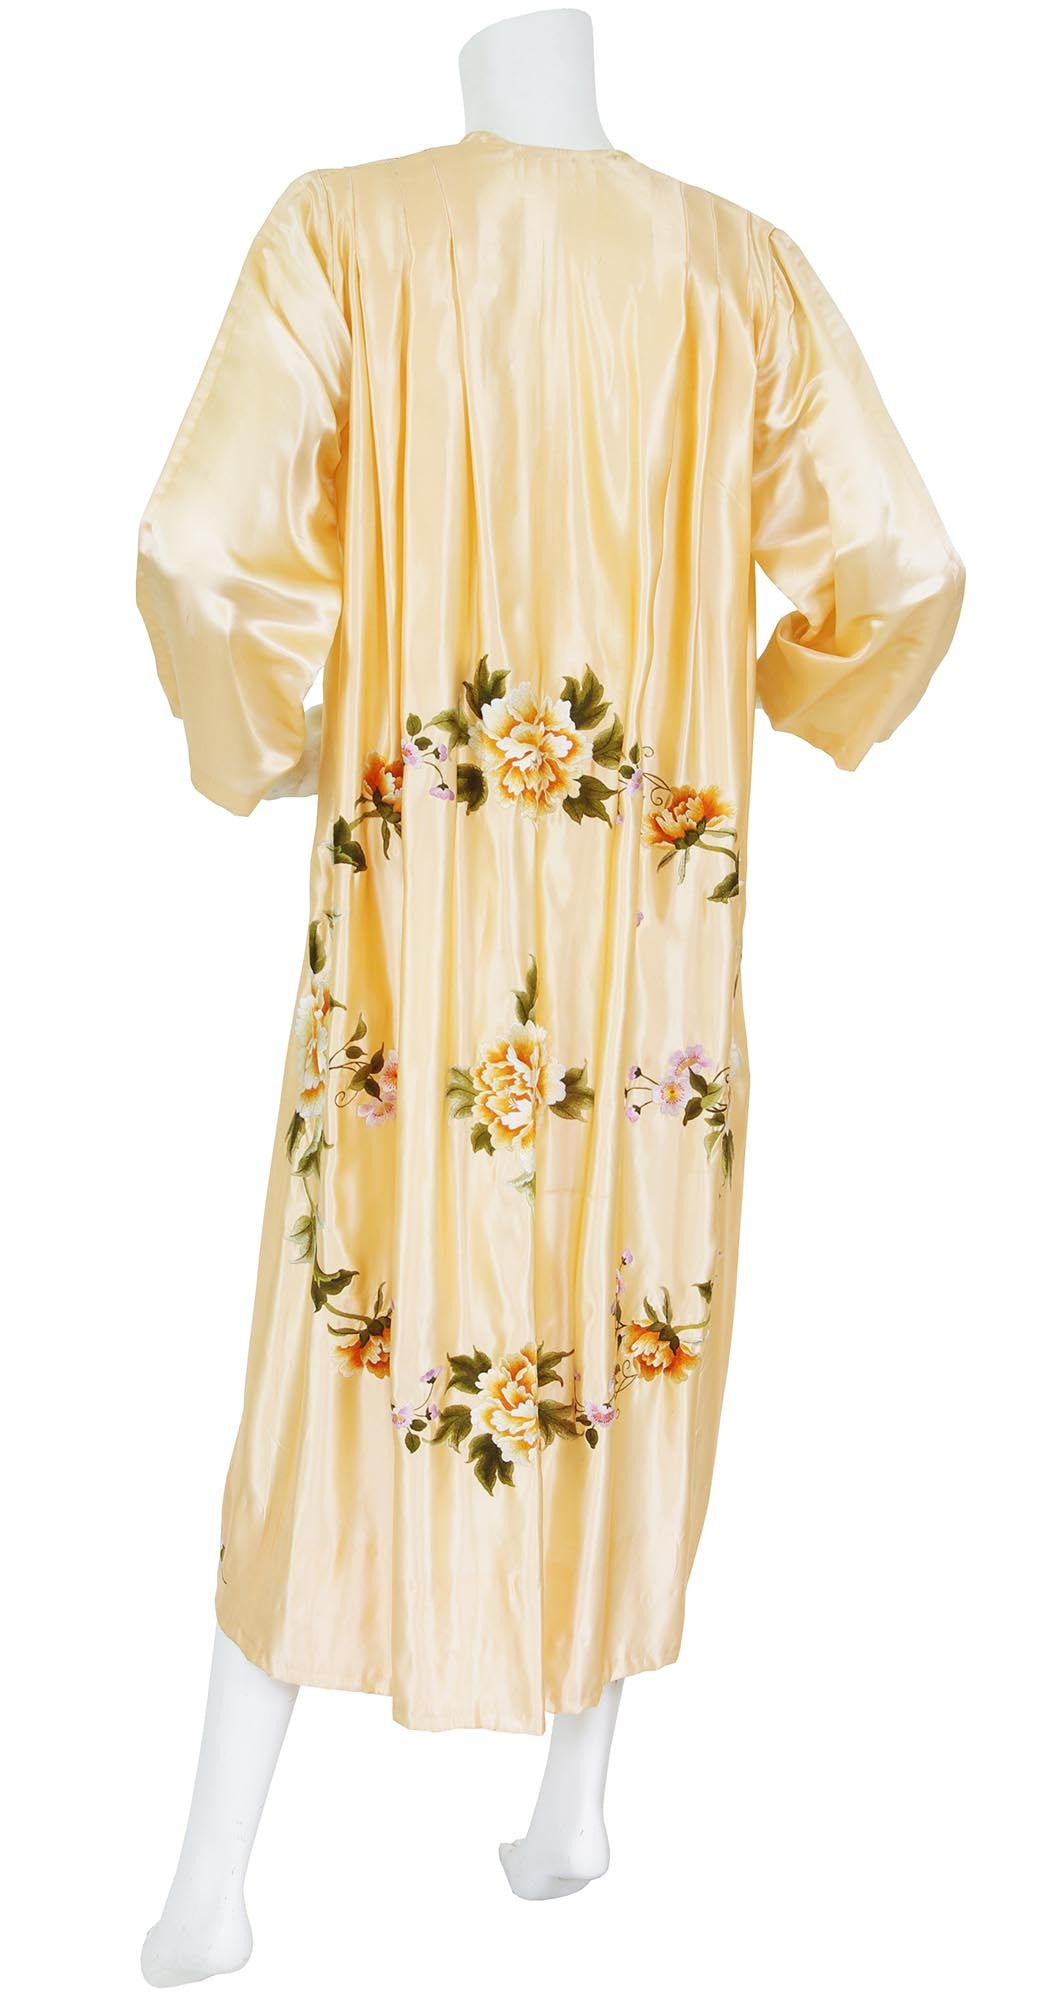 Stunning Hand Embroidered Floral Peach Silk Robe